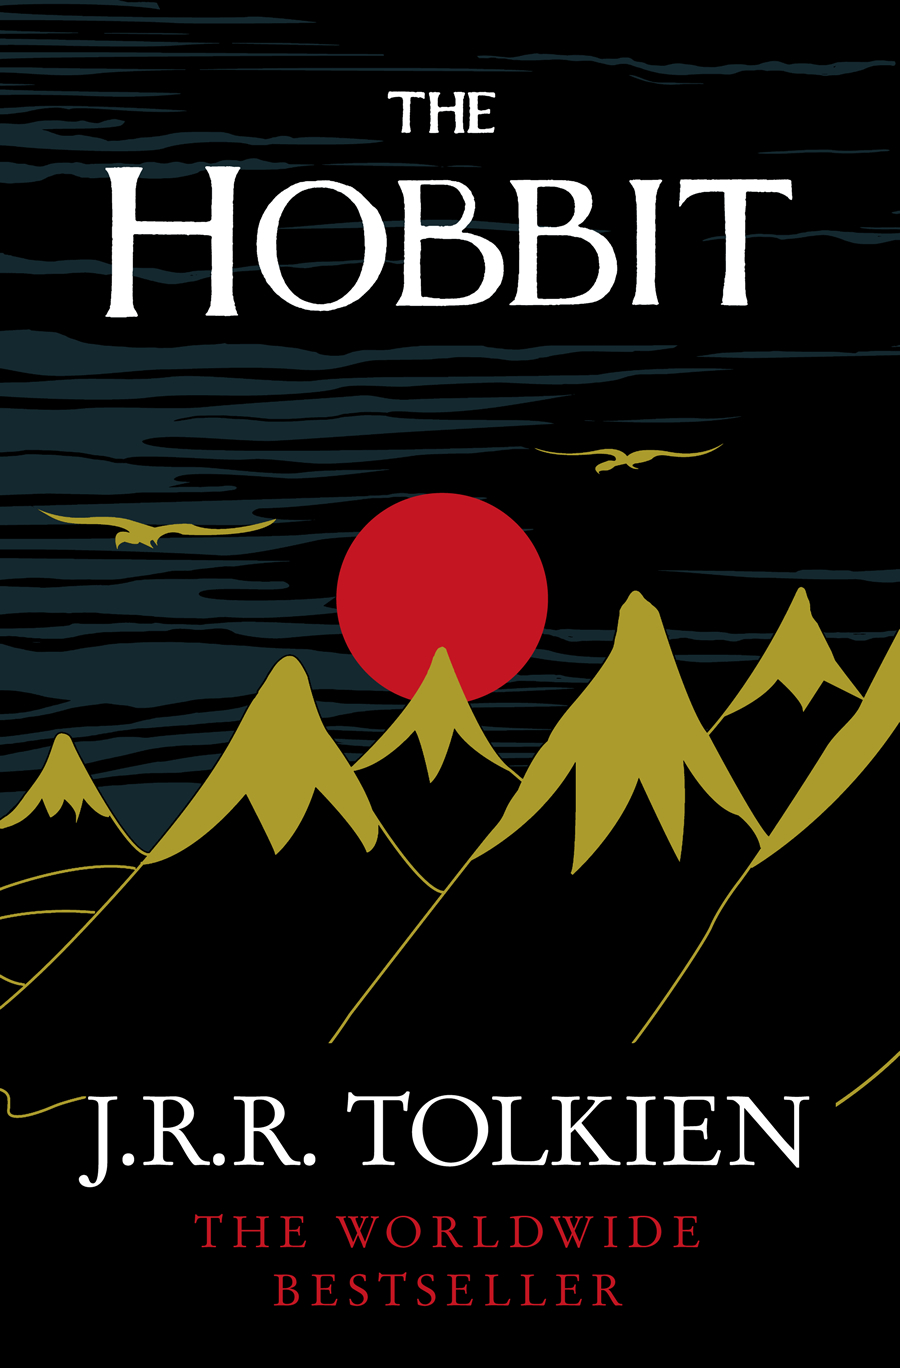 New J.R.R. Tolkien book may be Lord of the Rings author's last